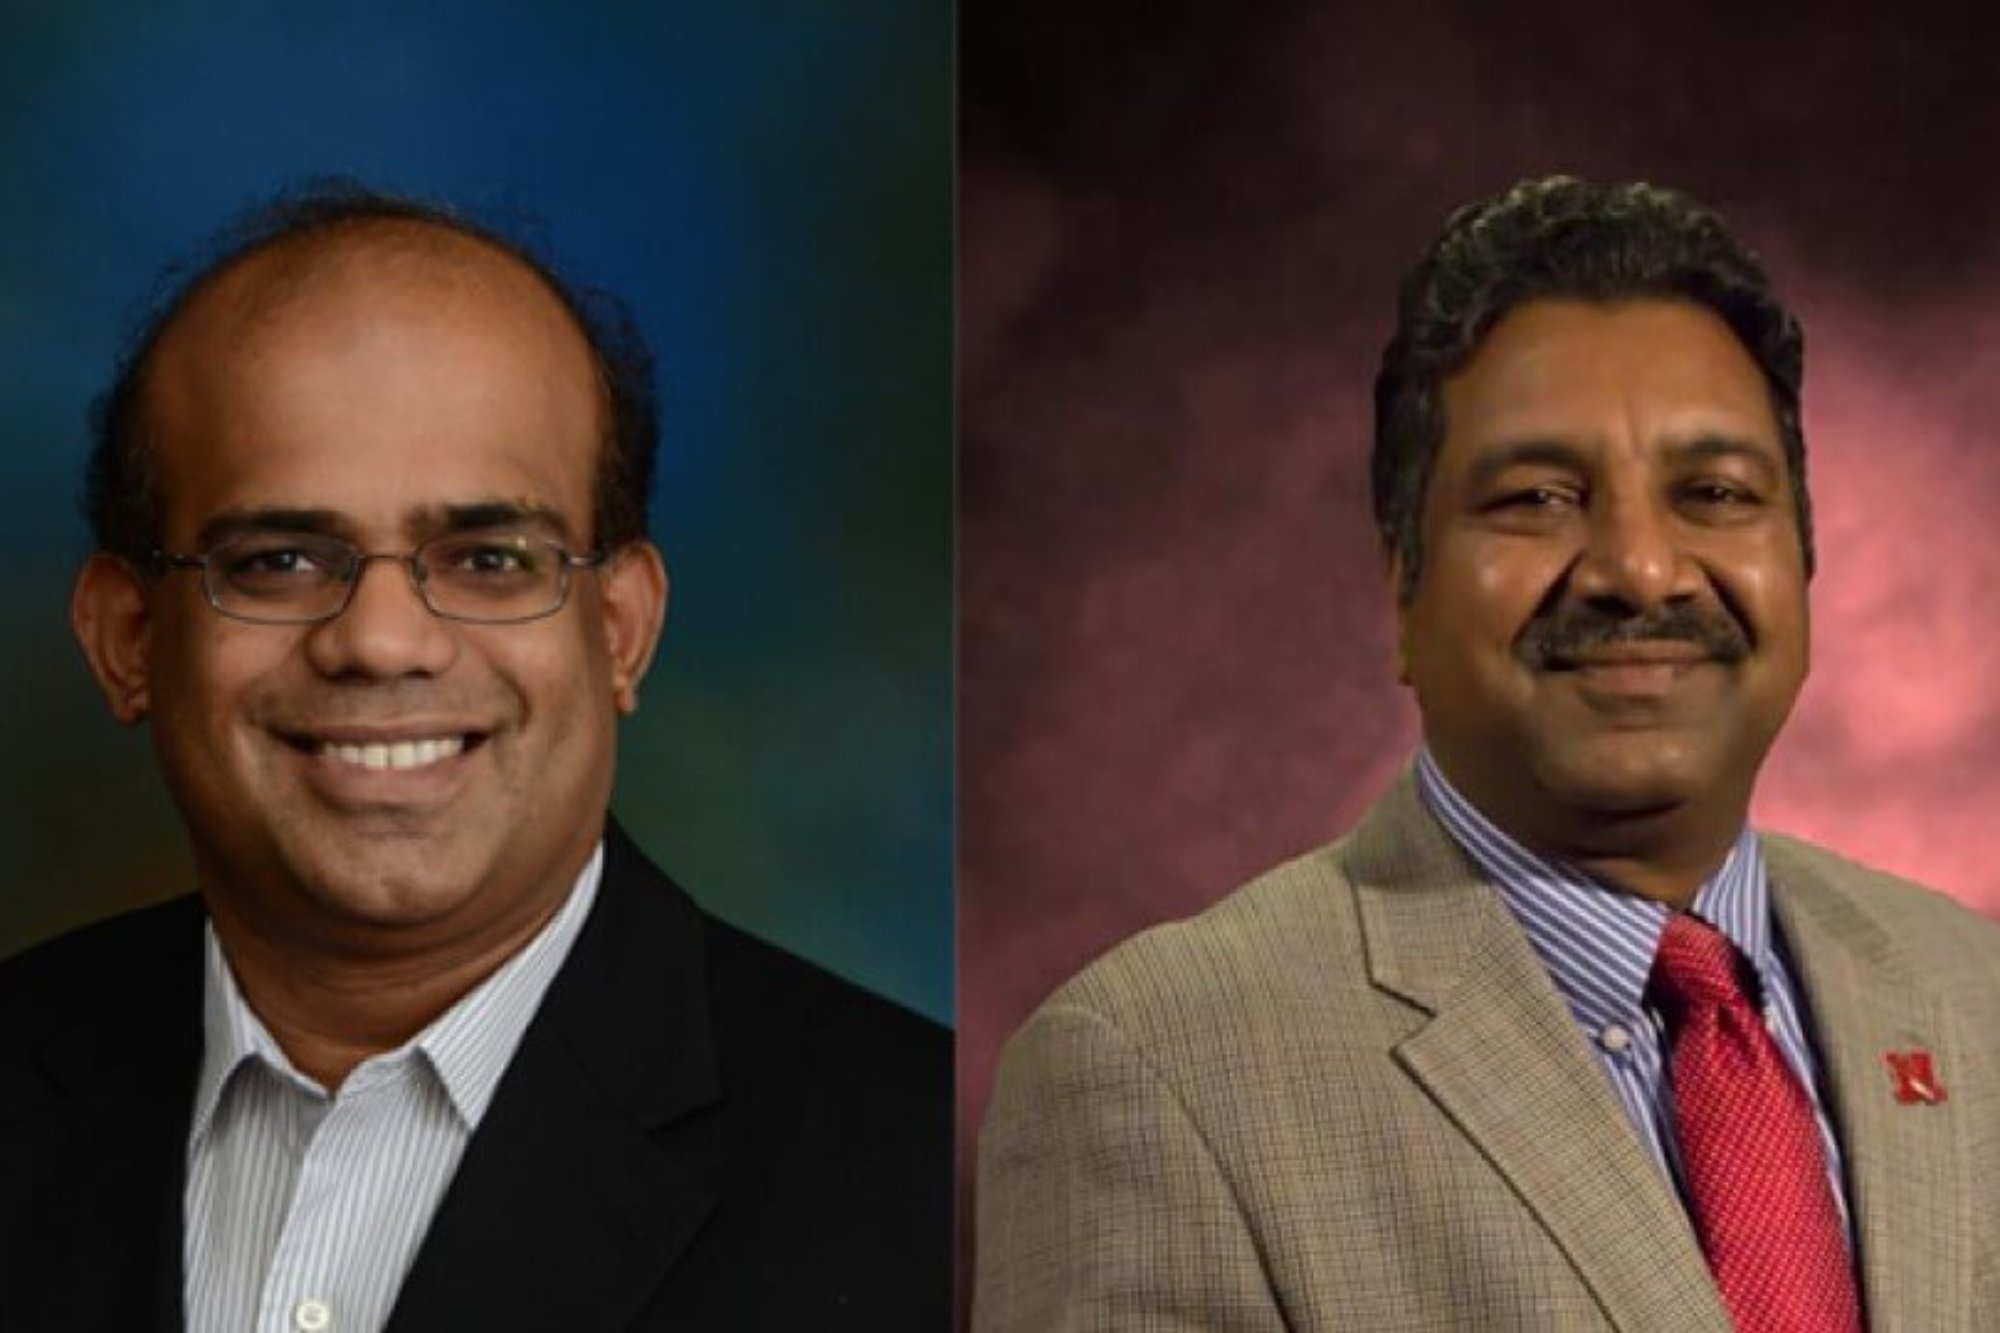 Dr. Thippareddi and Dr. Subbiah have received funding from the USDA